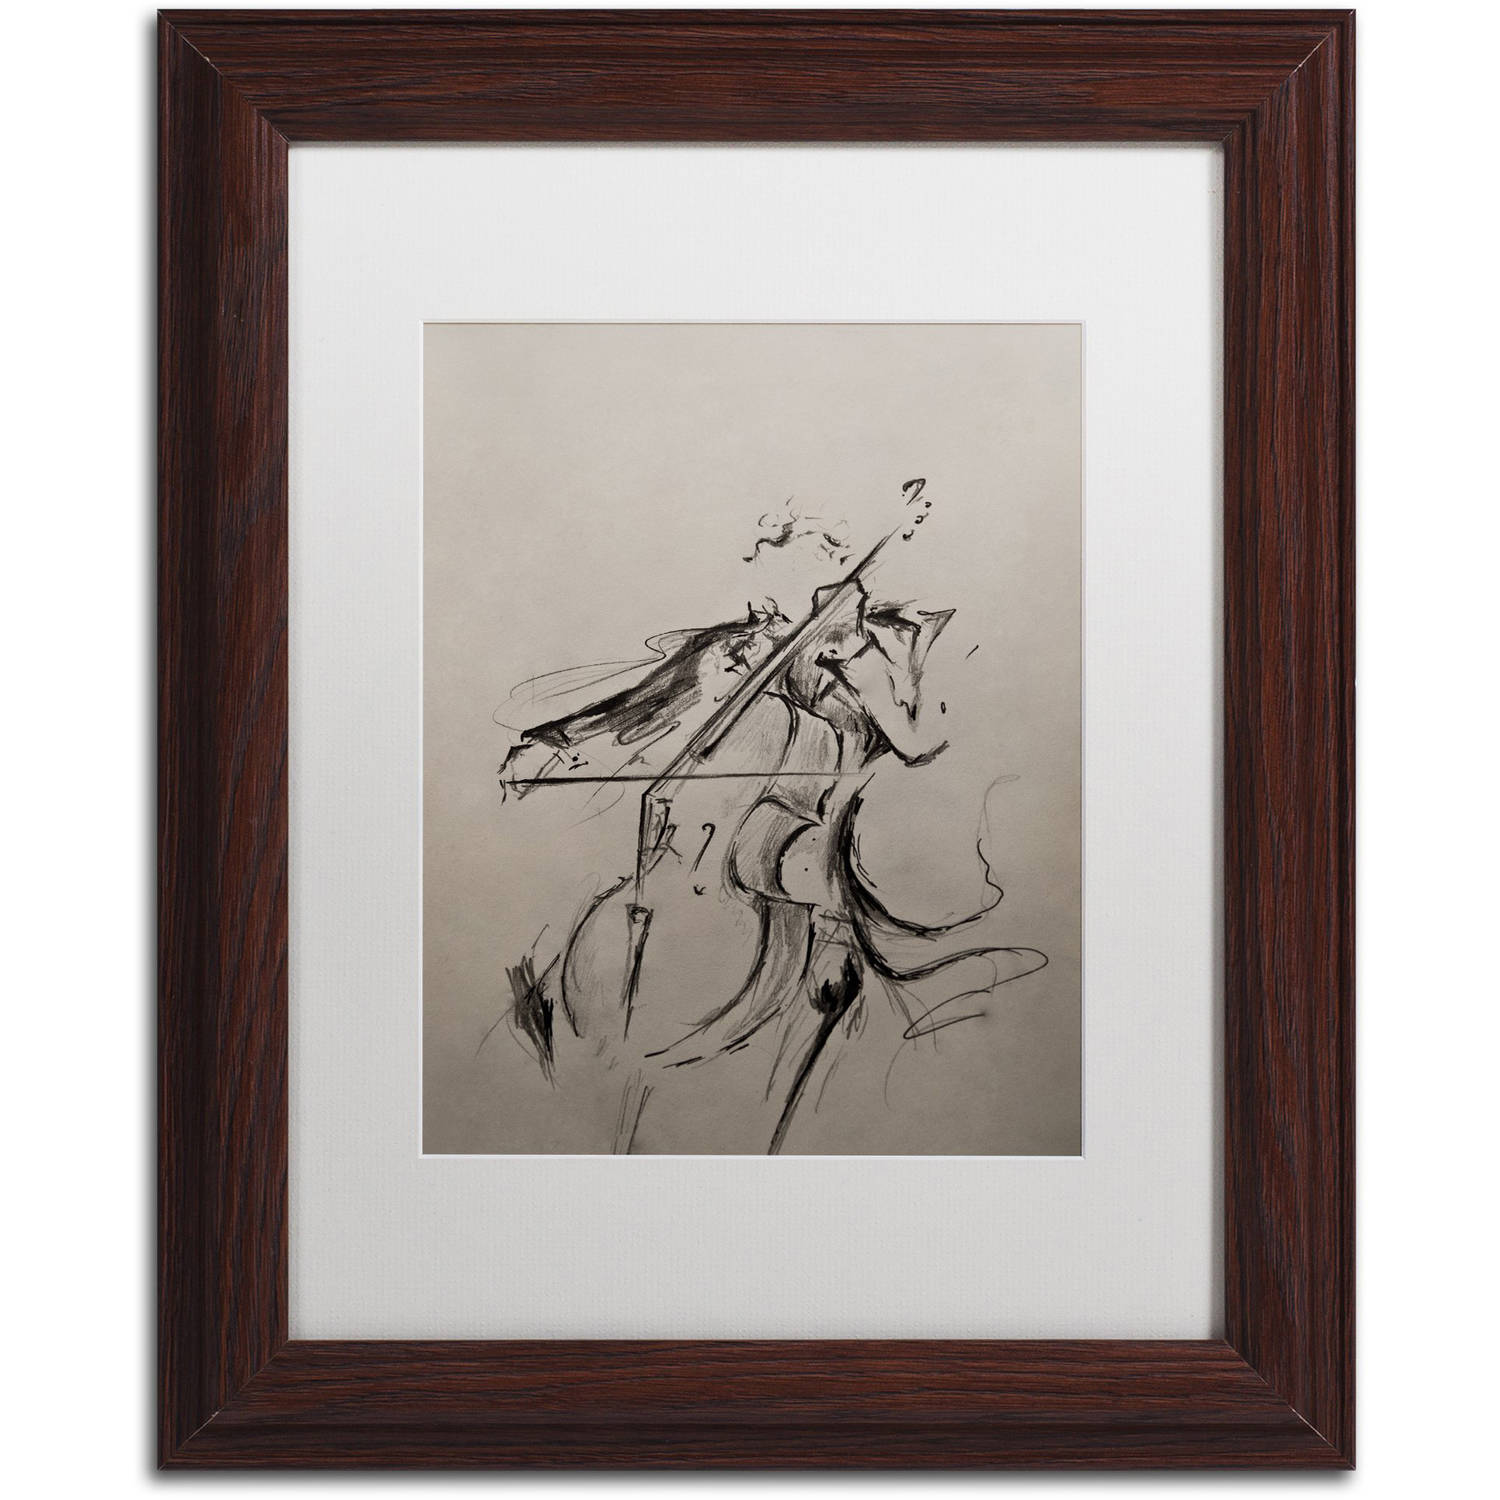 Trademark Fine Art 'The Cellist Sketch' Canvas Art by Marc Allante, White Matte, Wood Frame